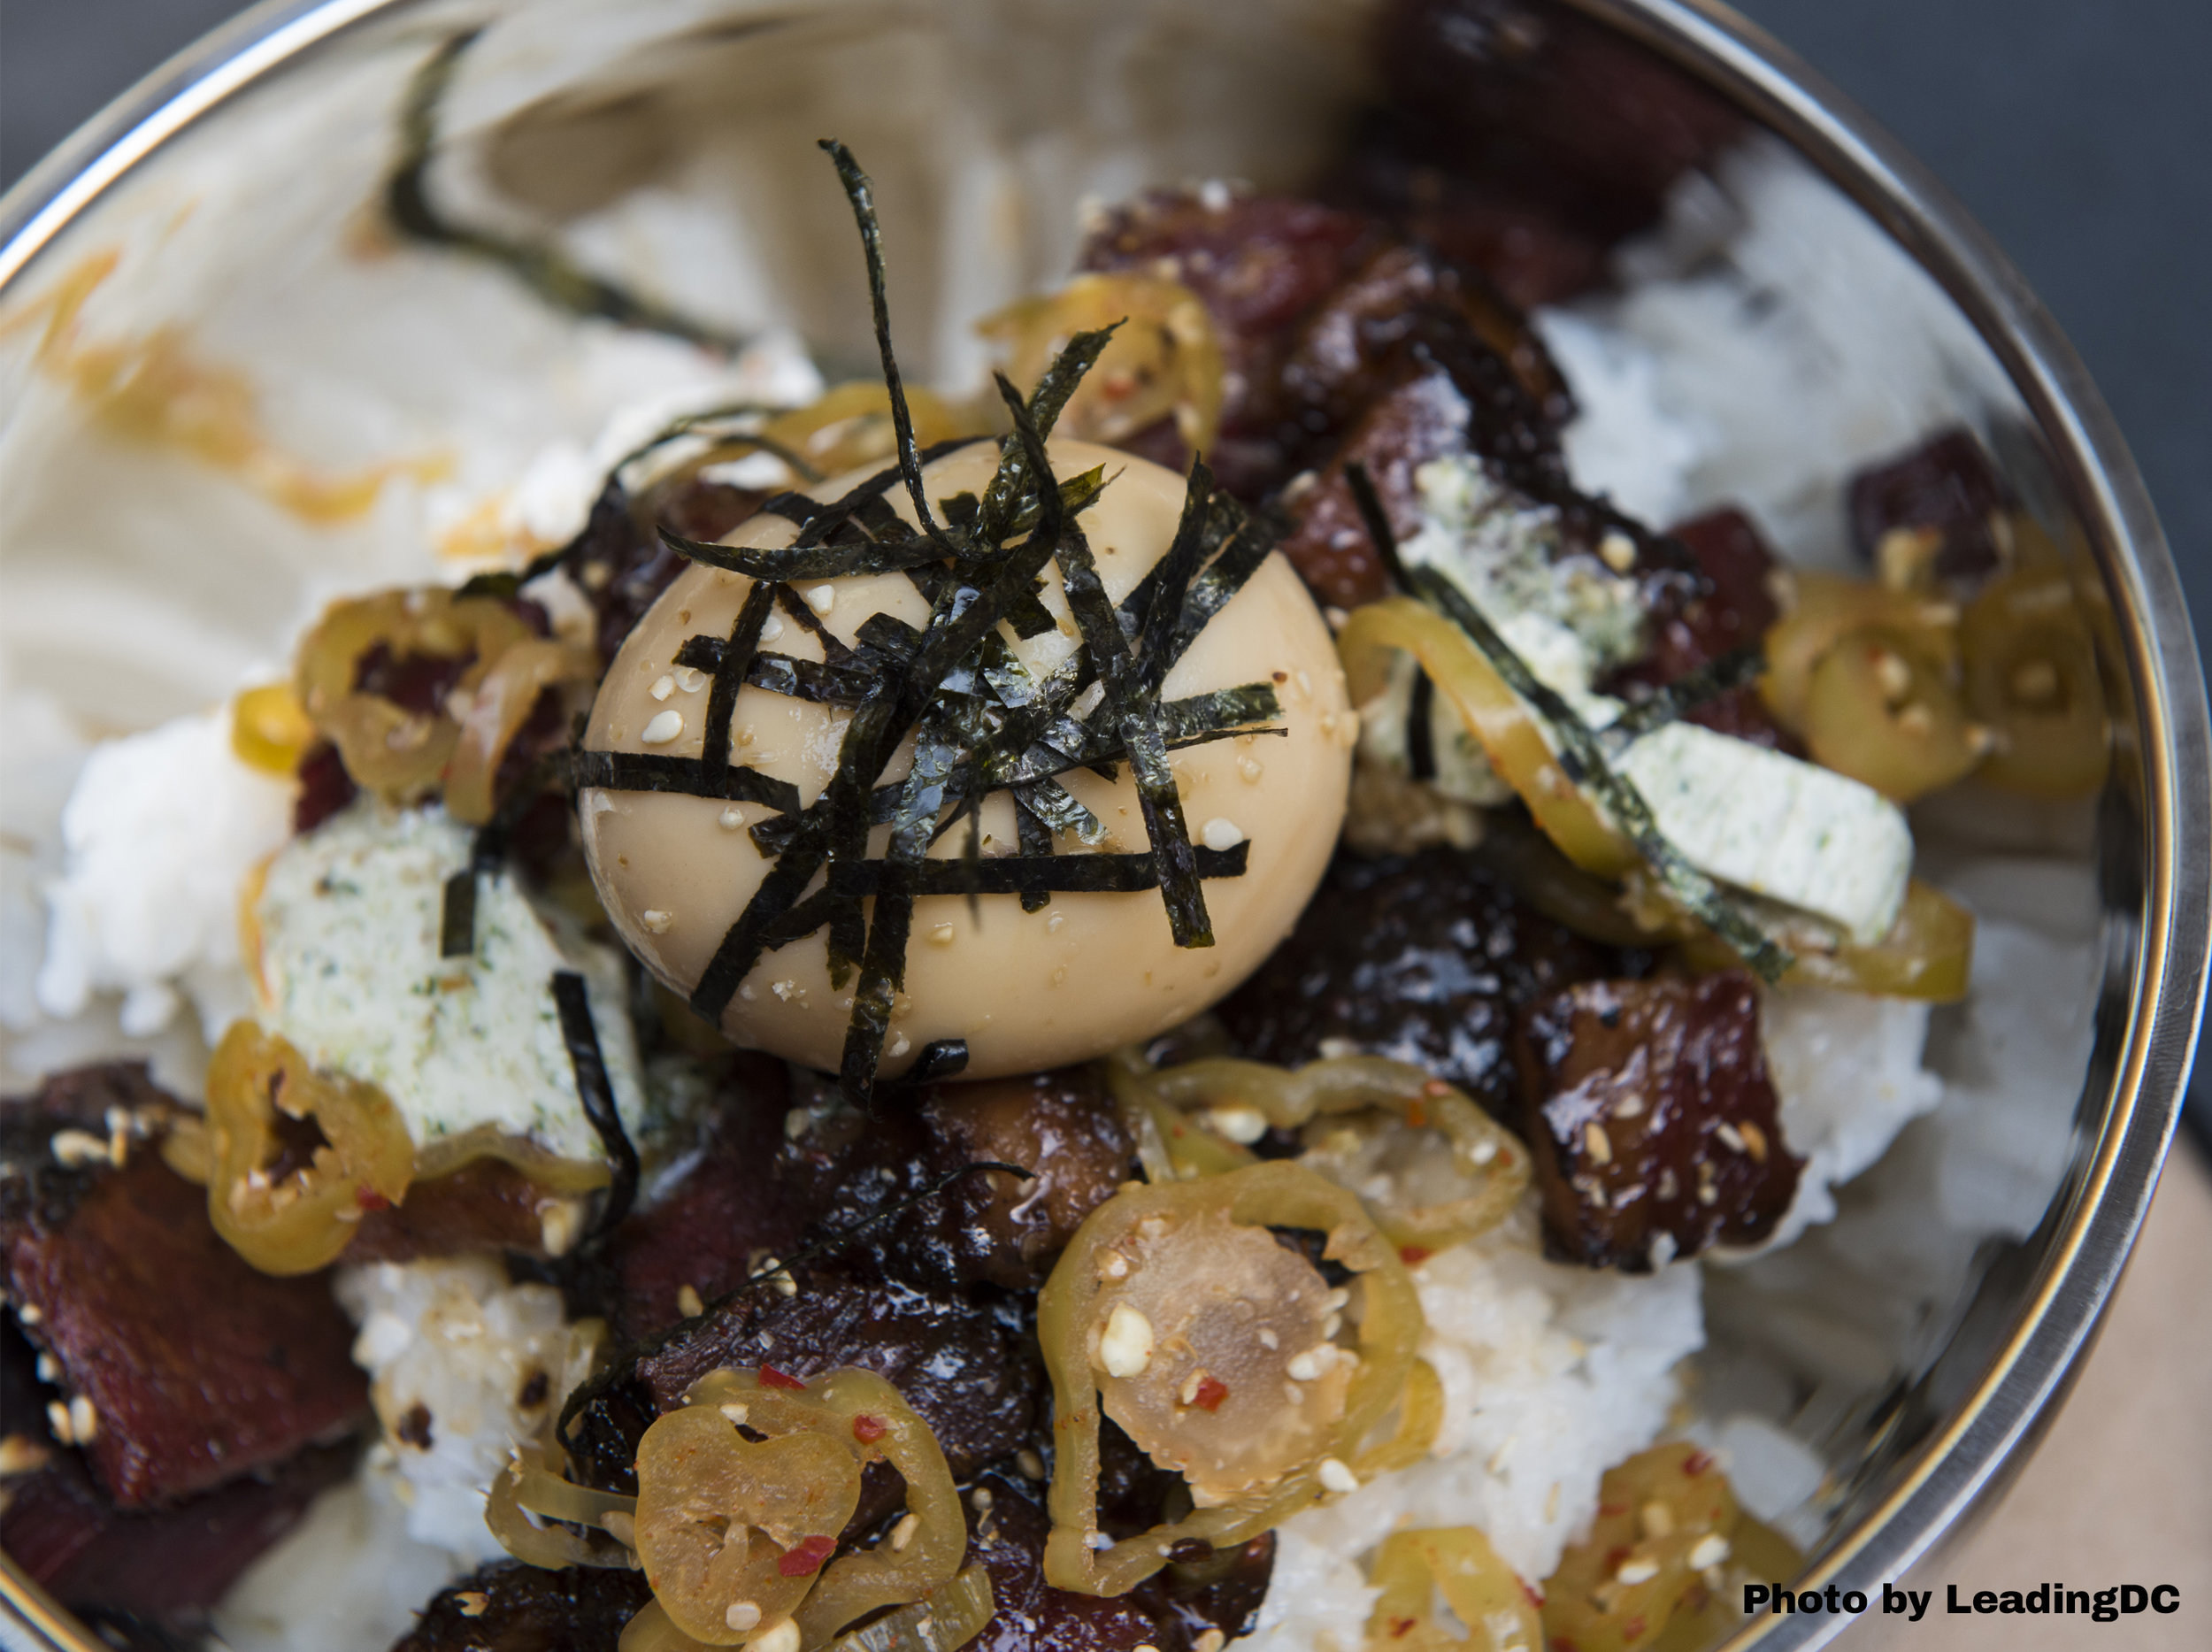 Wagshal's chopped brisket with soy brined soft egg, furikake butter and rice